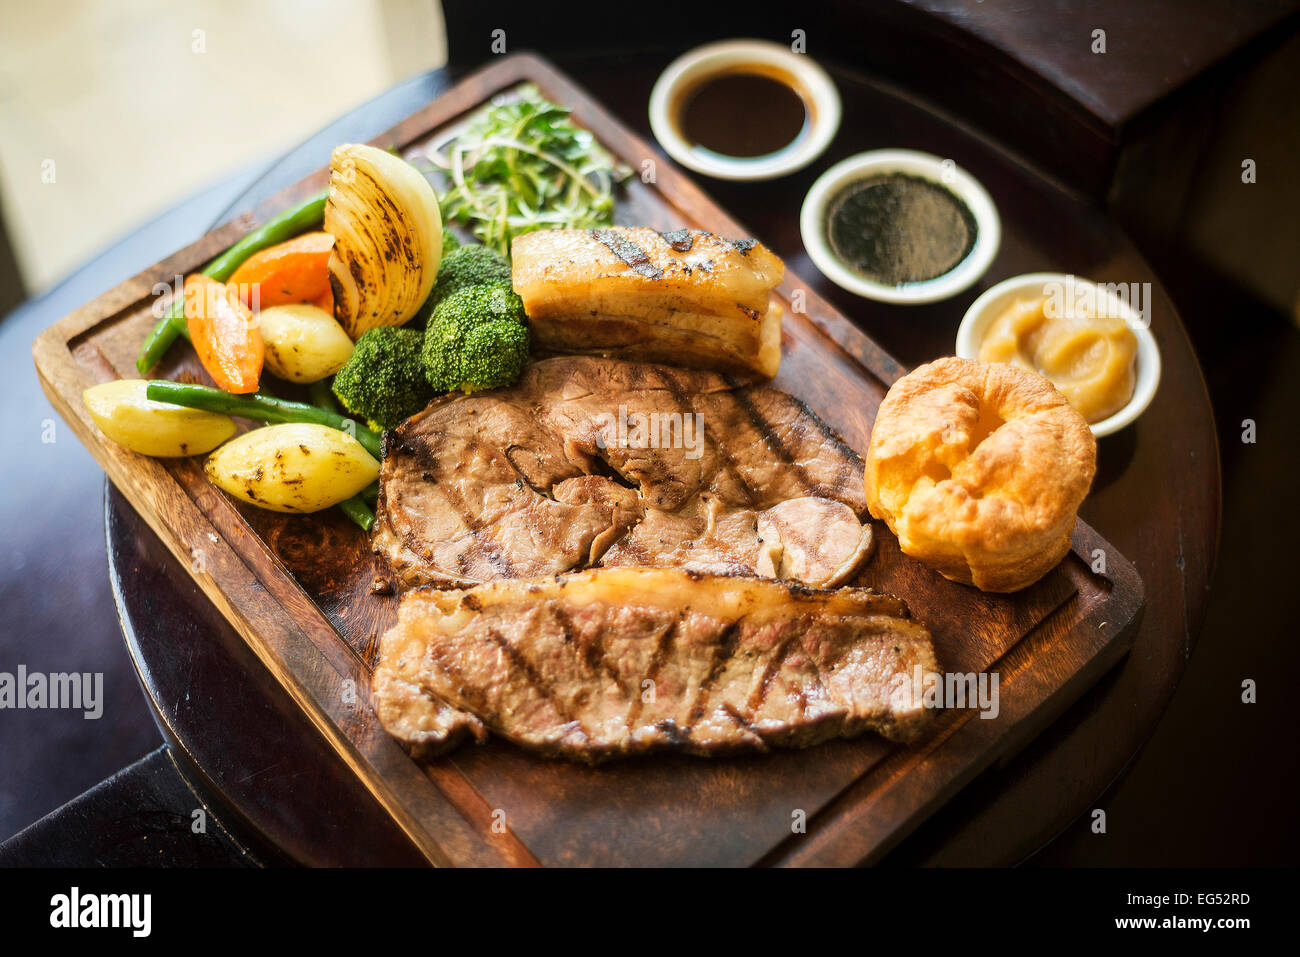 traditional english food sunday roast lunch in cozy restaurant pub - Stock Image